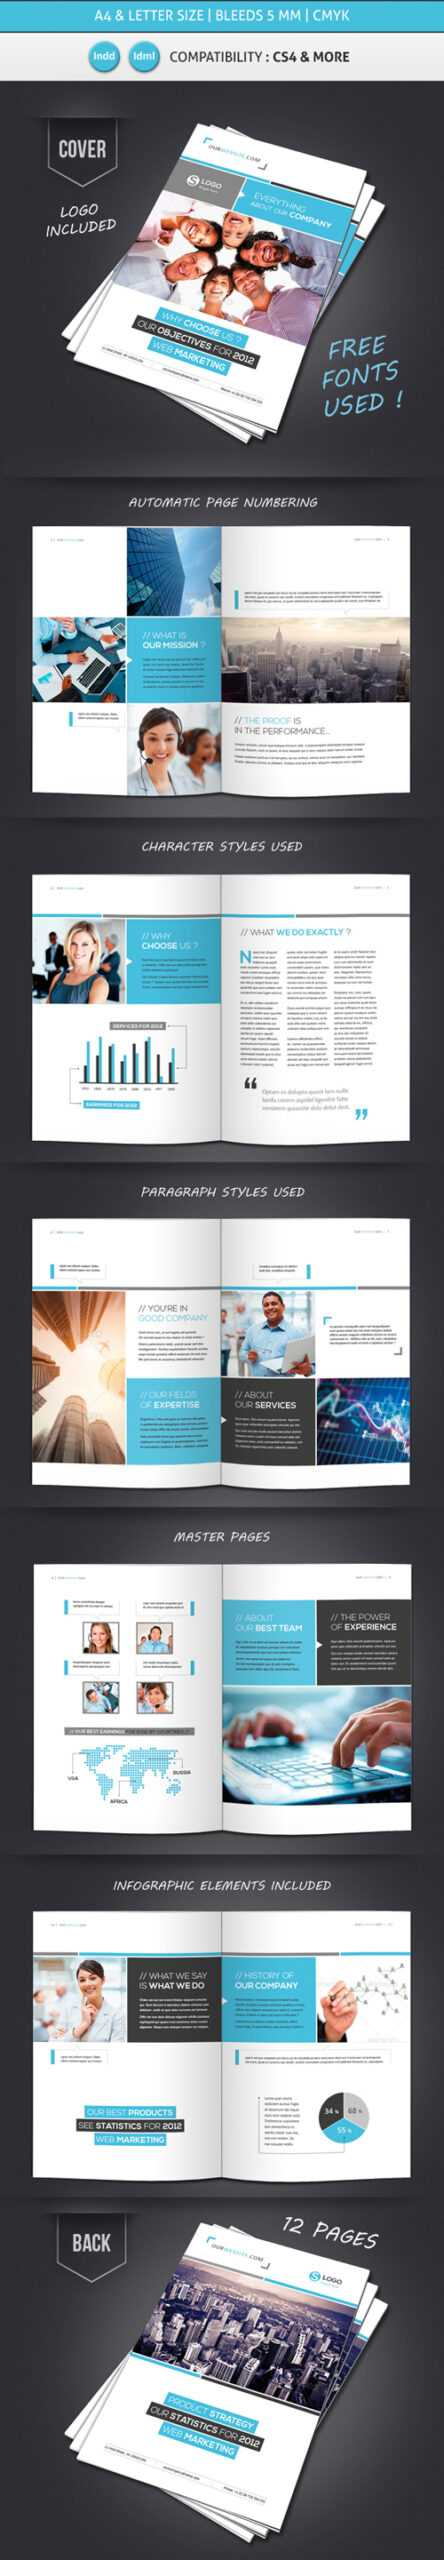 Professional Brochure Designs | Design | Graphic Design Junction With Regard To 12 Page Brochure Template